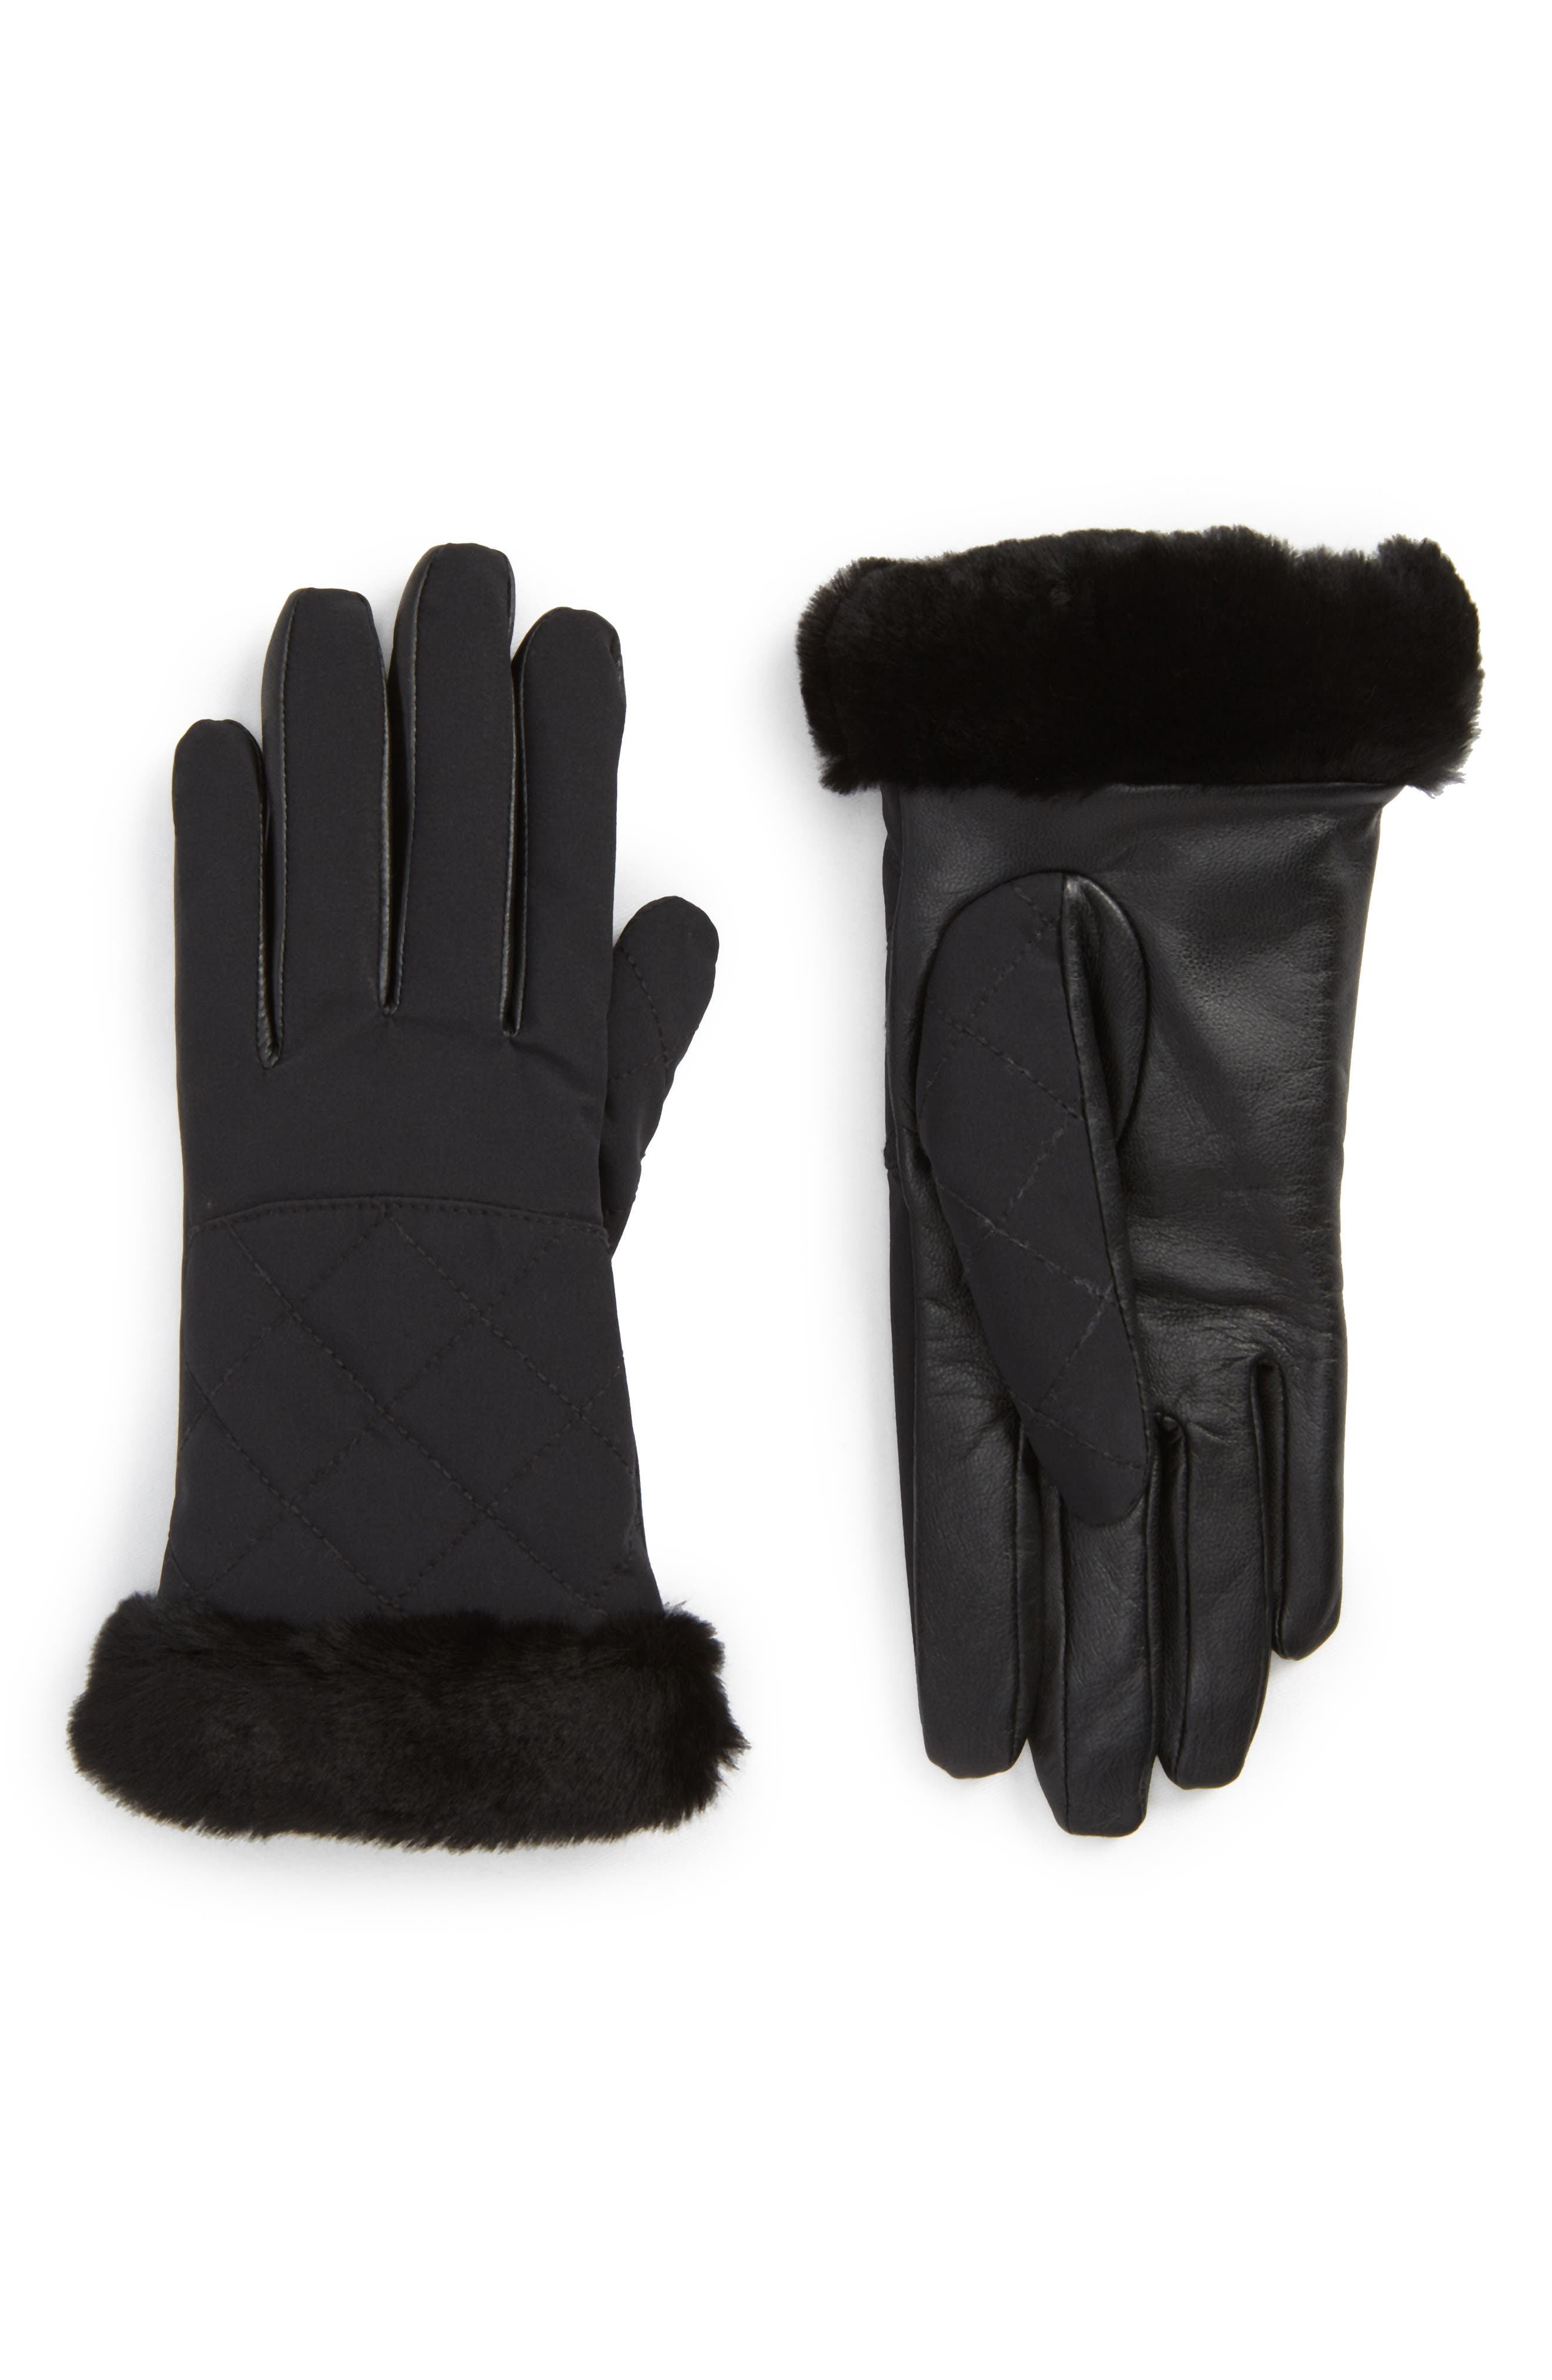 UGG<sup>®</sup> Water Resistant Touchscreen Quilted Nylon, Leather & Genuine Shearling Gloves,                             Main thumbnail 1, color,                             001